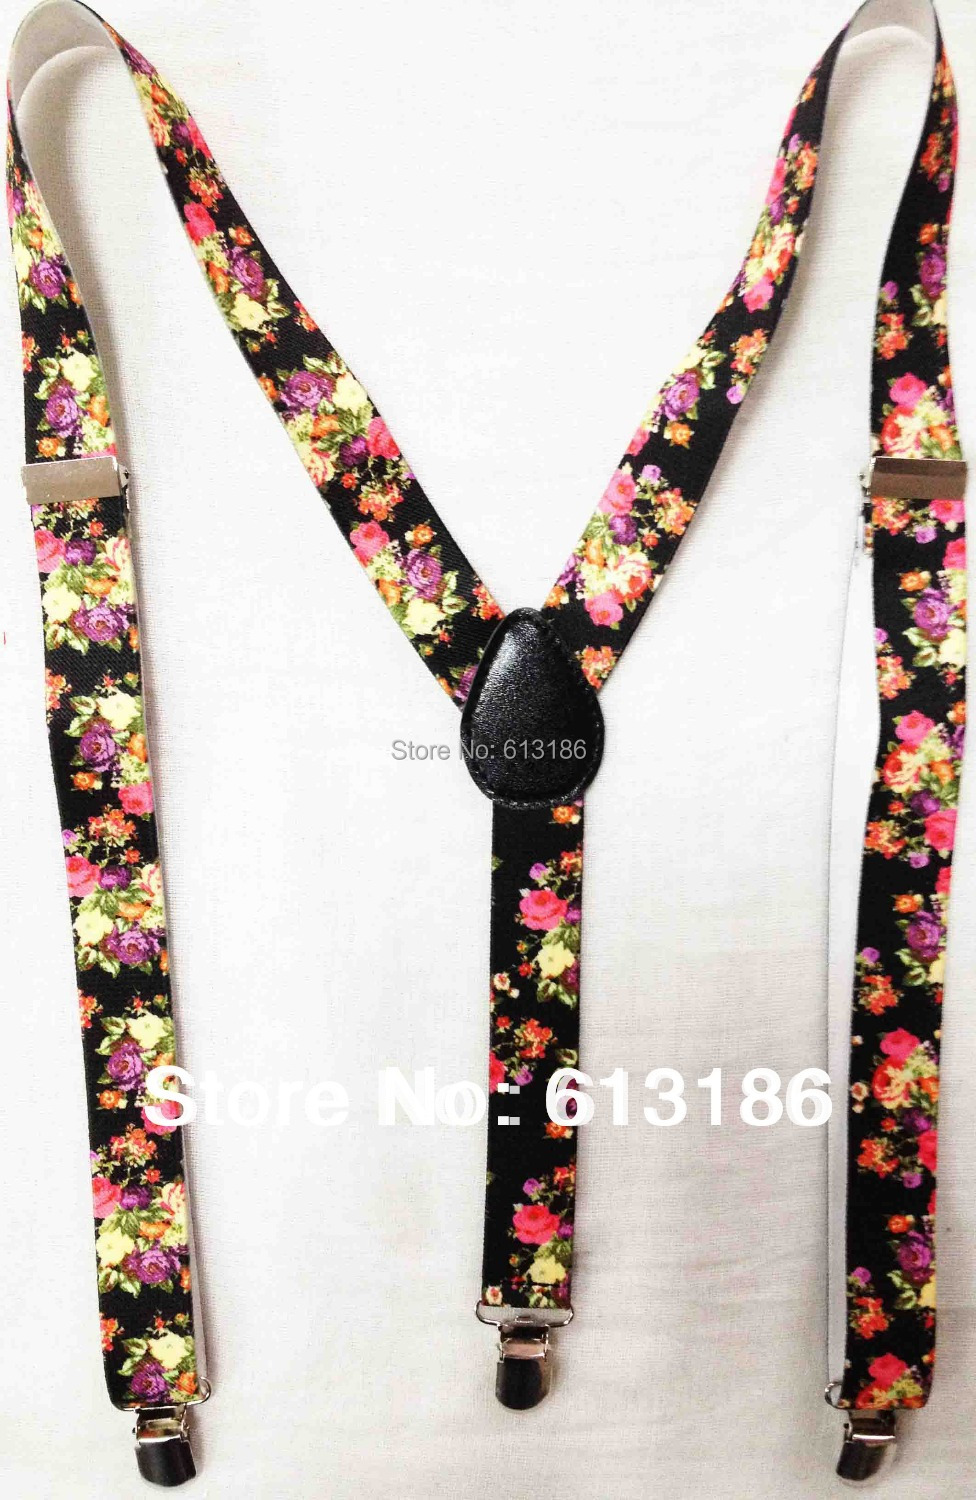 Free Shipping 2018 Hot Sales New Womens /Ladies Adjustable Clip-on 2.5 CM Wide Floral/Flower Printed Suspender/Braces